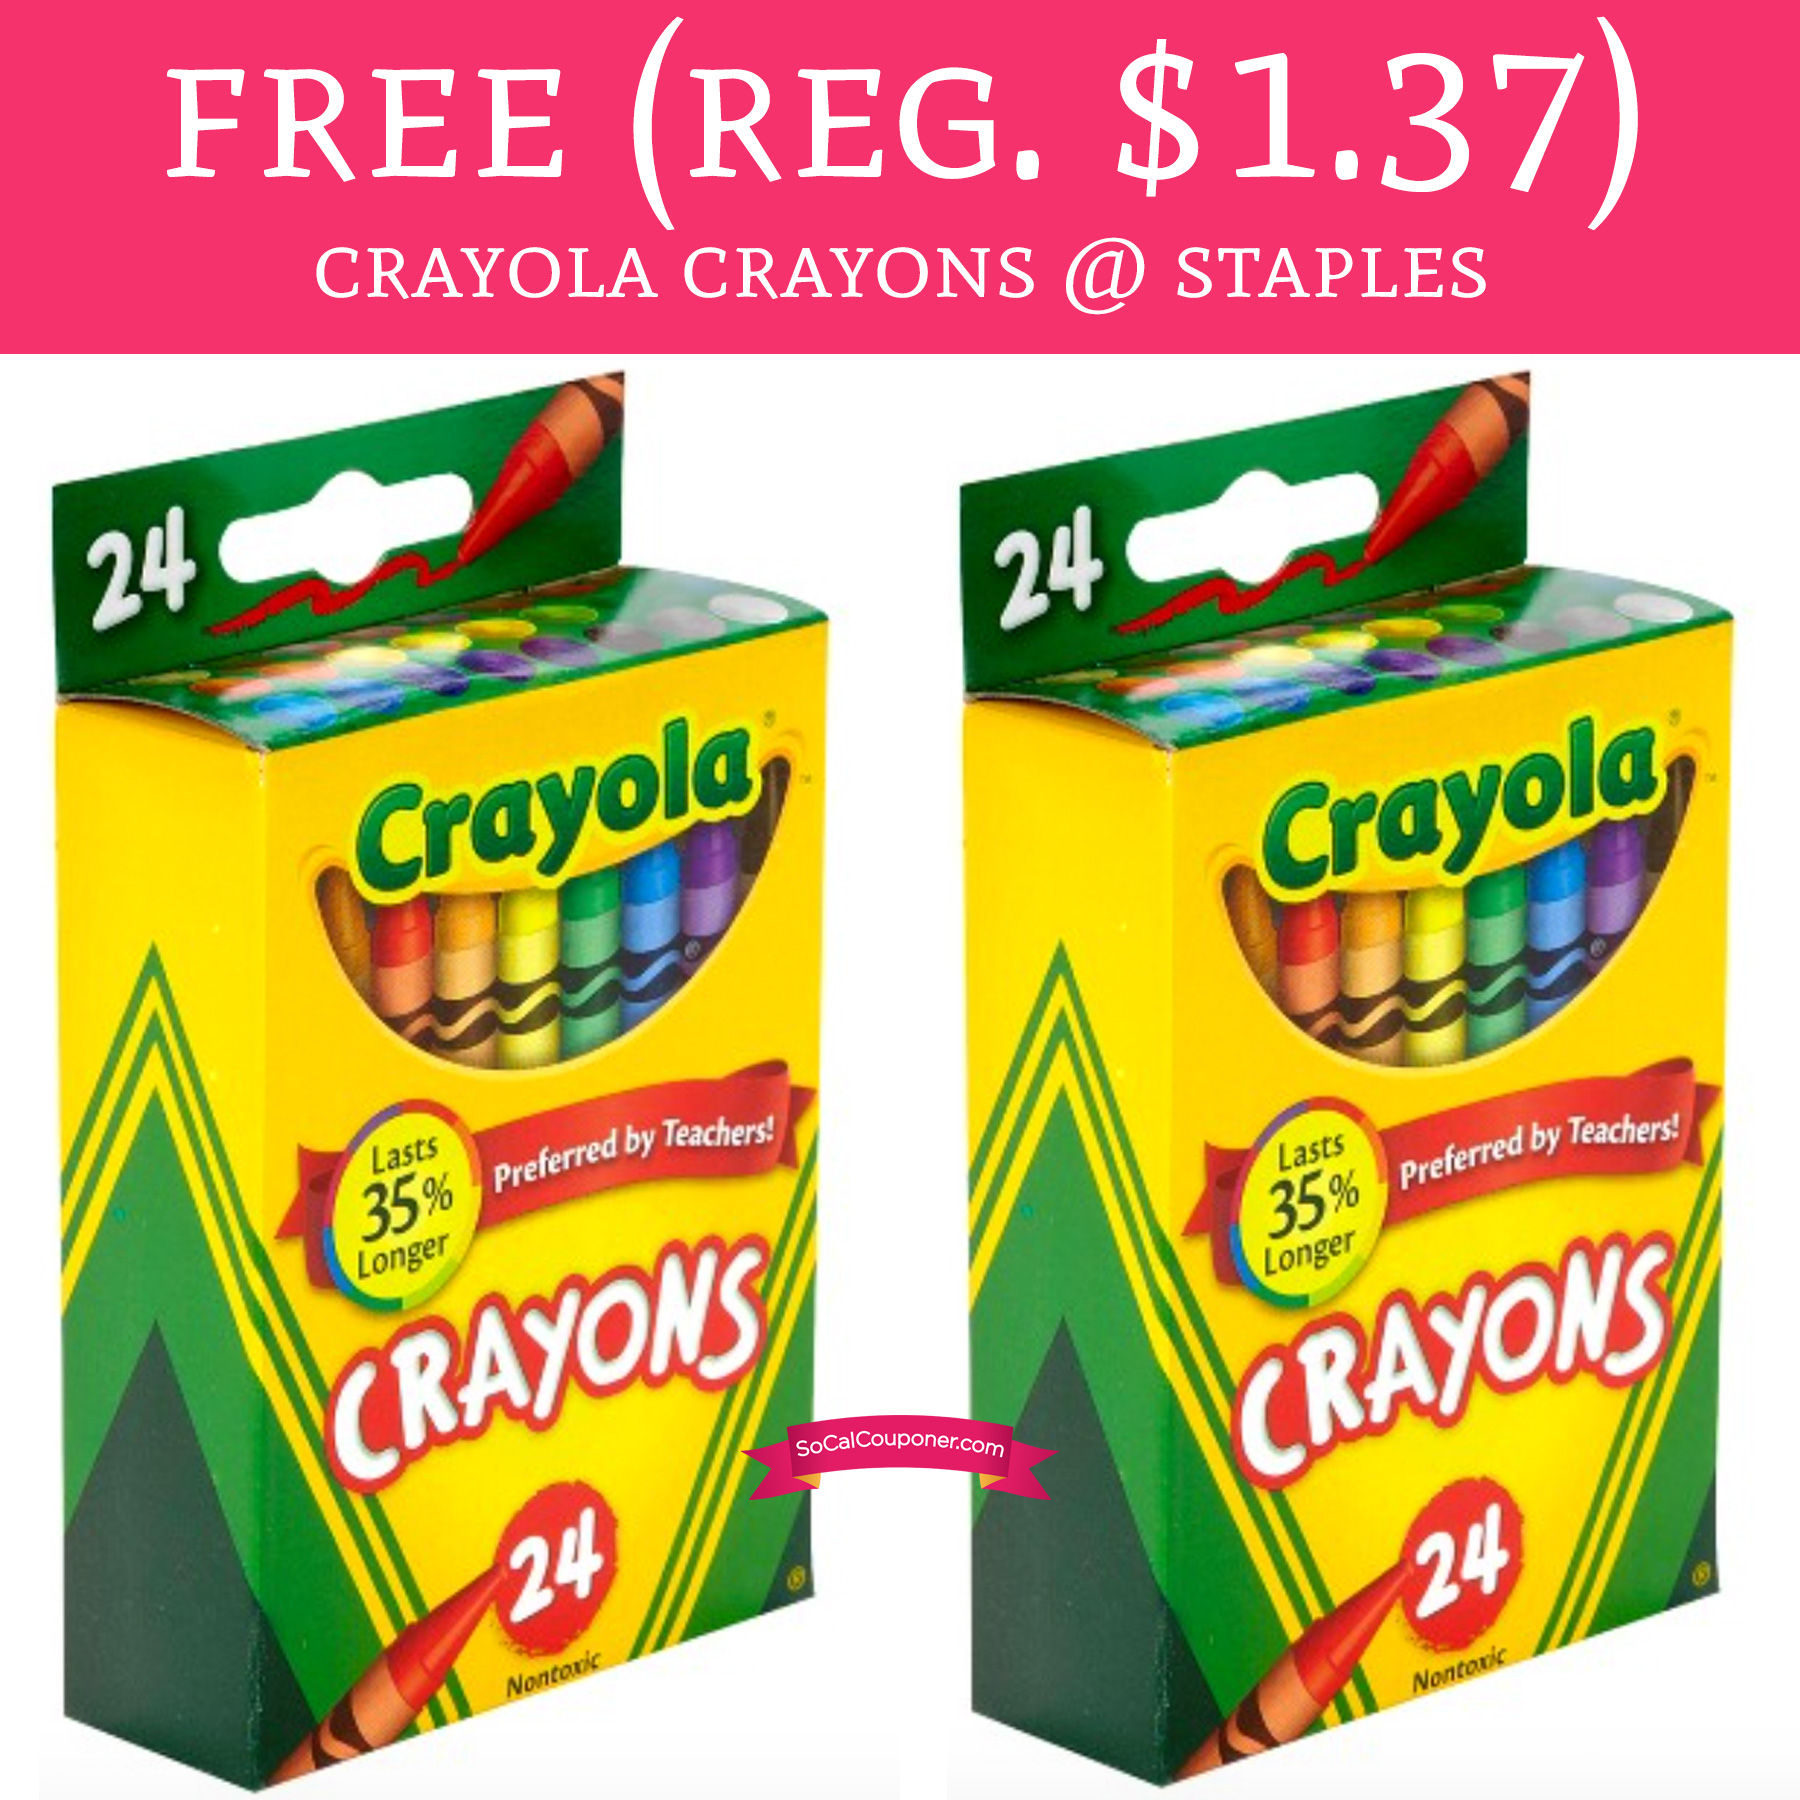 free regular 137 crayola crayons 24 count staples deal hunting babe - Free Crayola Crayons